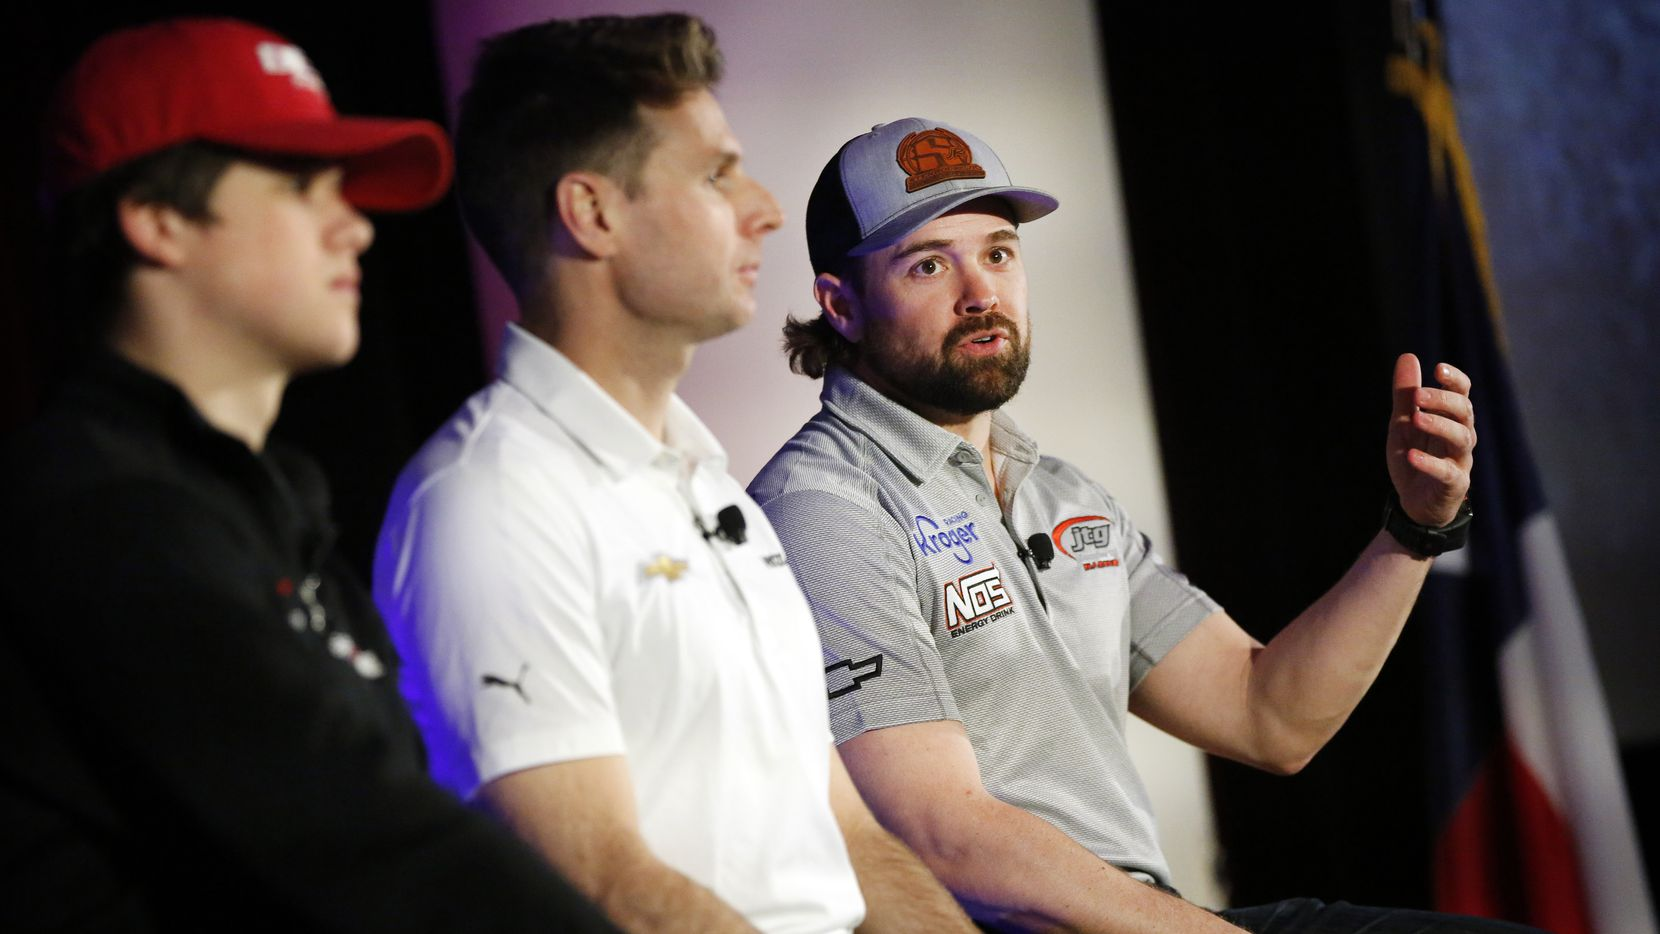 NASCAR Cup driver Ricky Stenhouse, Jr. (right)  answers questions about the upcoming race during Media Day at Texas Motor Speedway in Fort Worth, Wednesday, February 26, 2020. Seated next to him is IndyCar driver Will Power  and NASCAR Xfinity driver Harrison Burton (left).